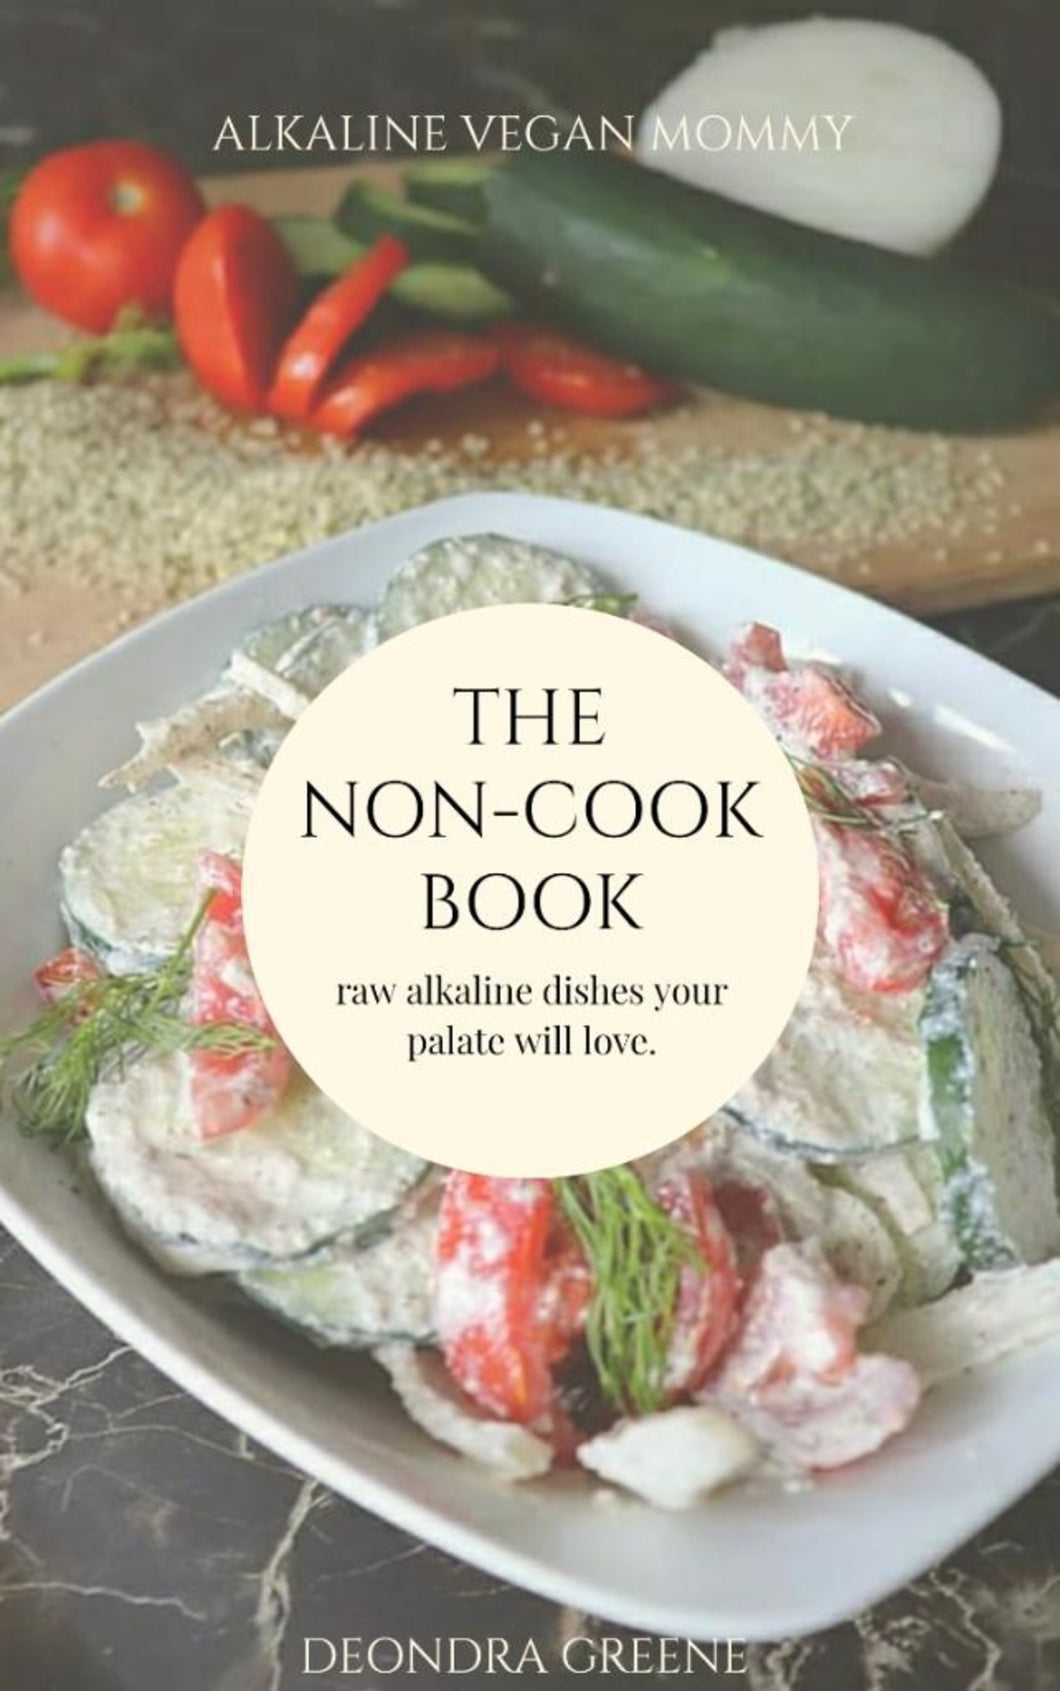 Alkaline Vegan Mommy's Non-Cookbook